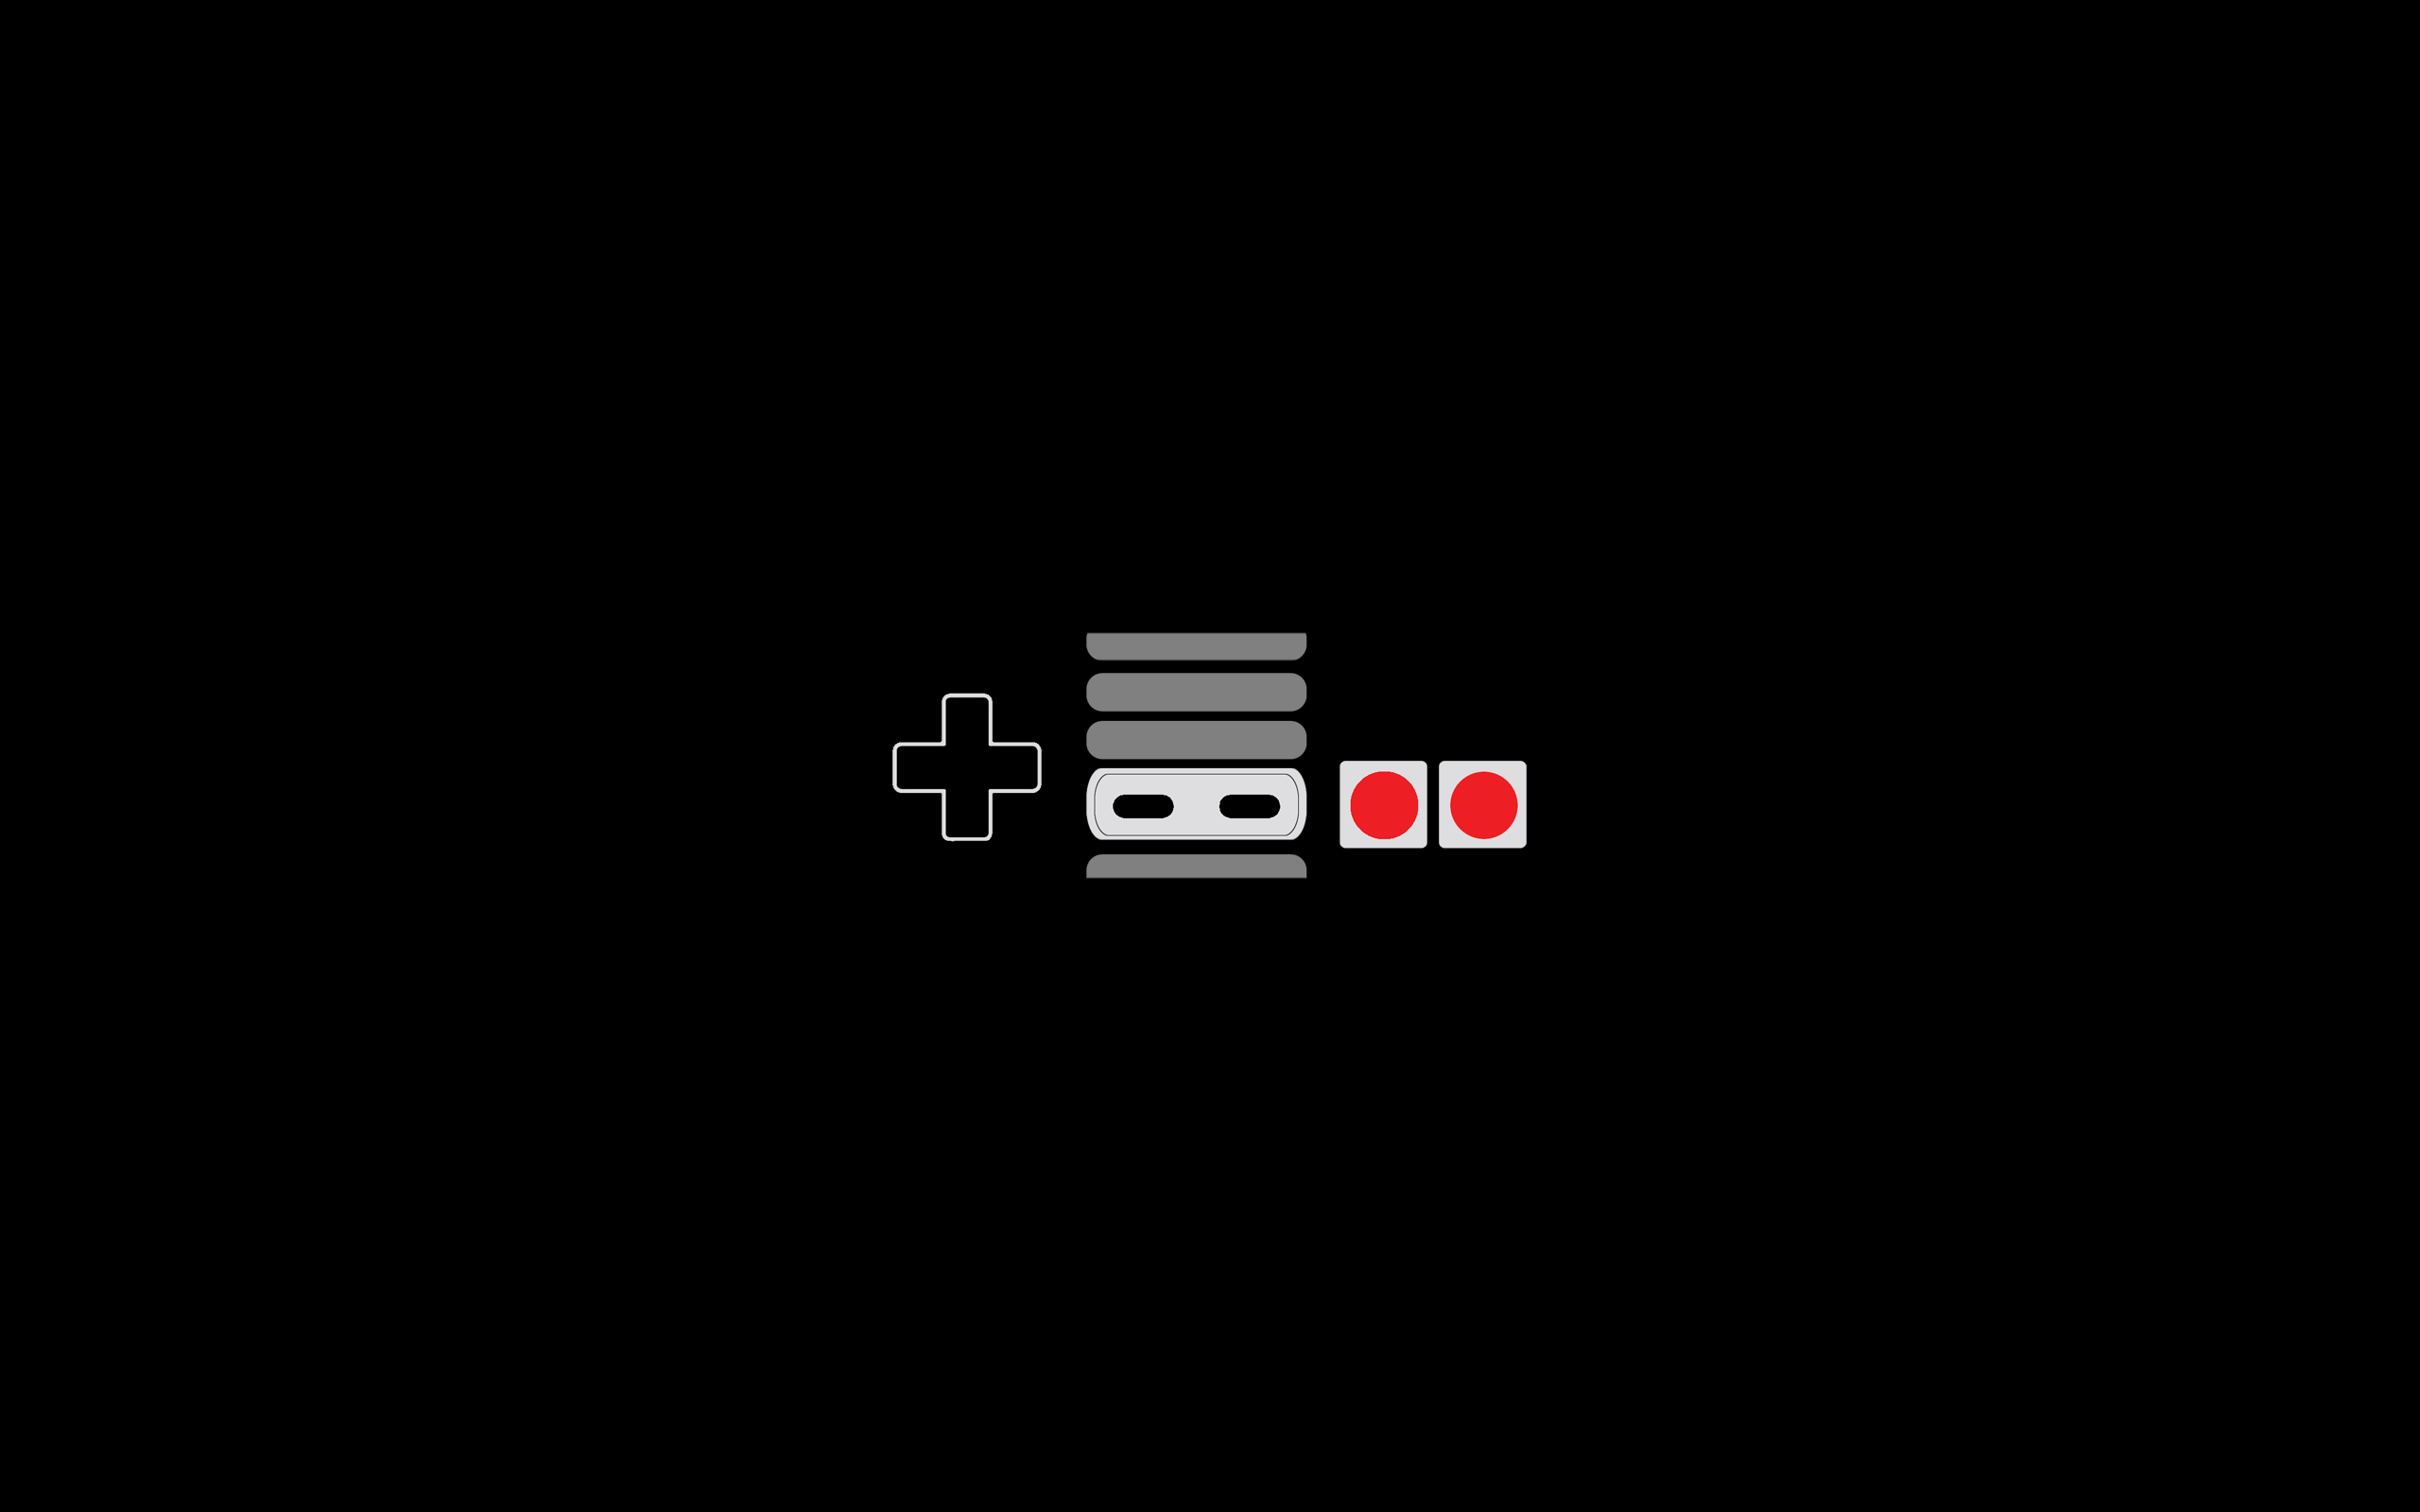 NES Wallpapers - Wallpaper Cave